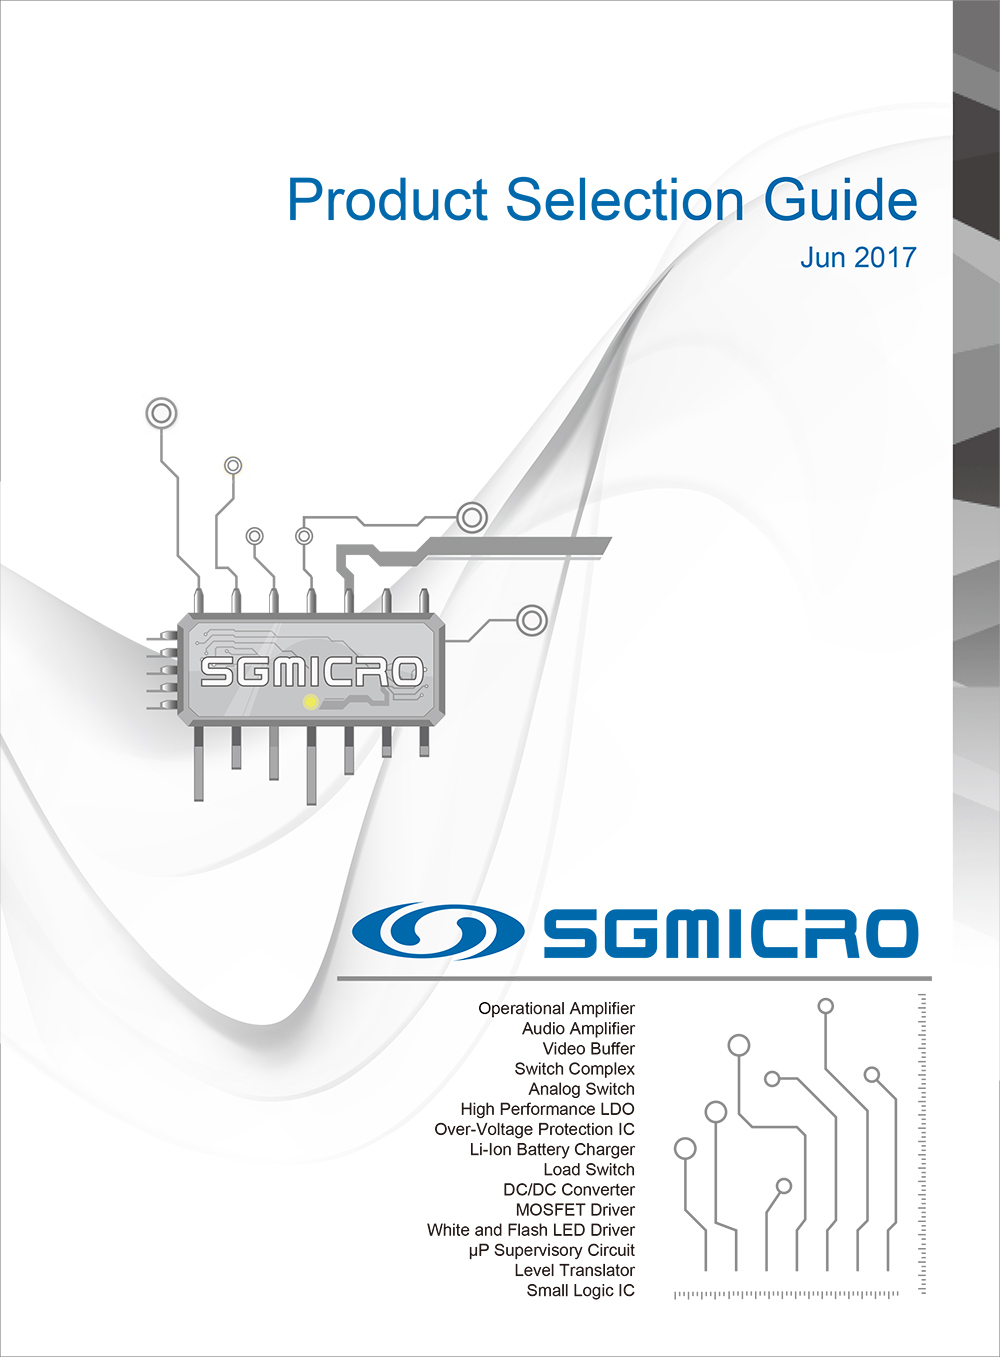 SG-MICRO_Product-Selection-Guide-2017_1000px